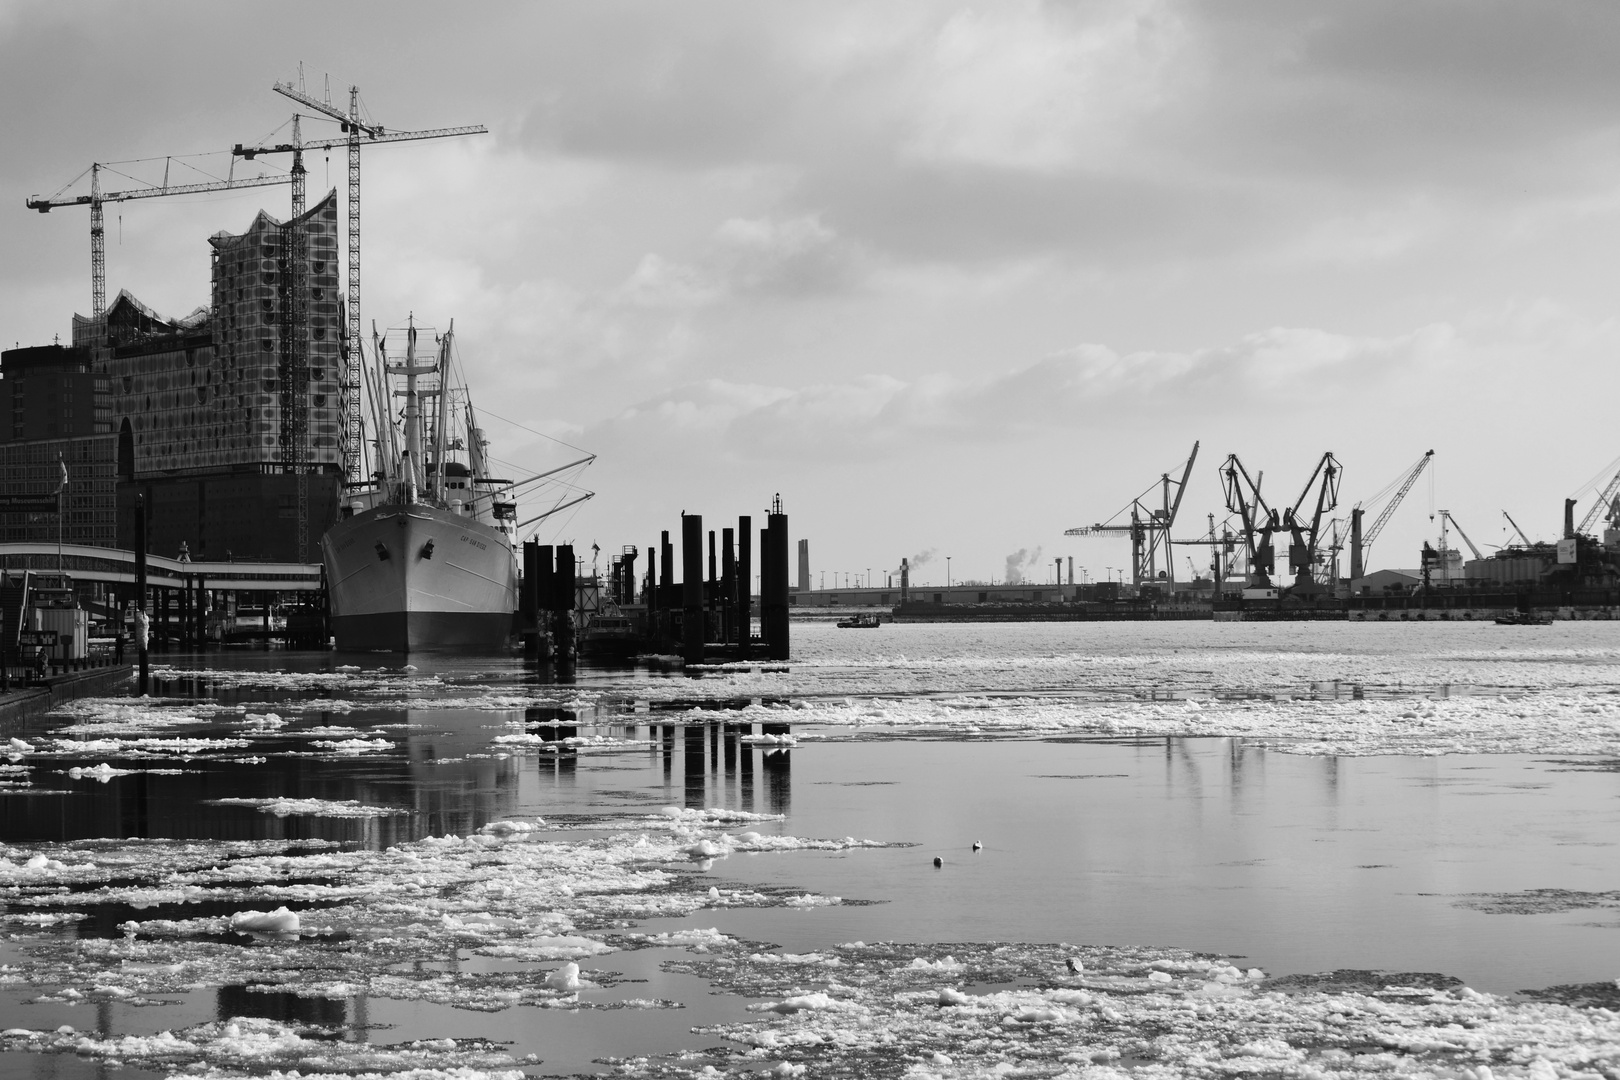 Icecold harbor day in Hamburg